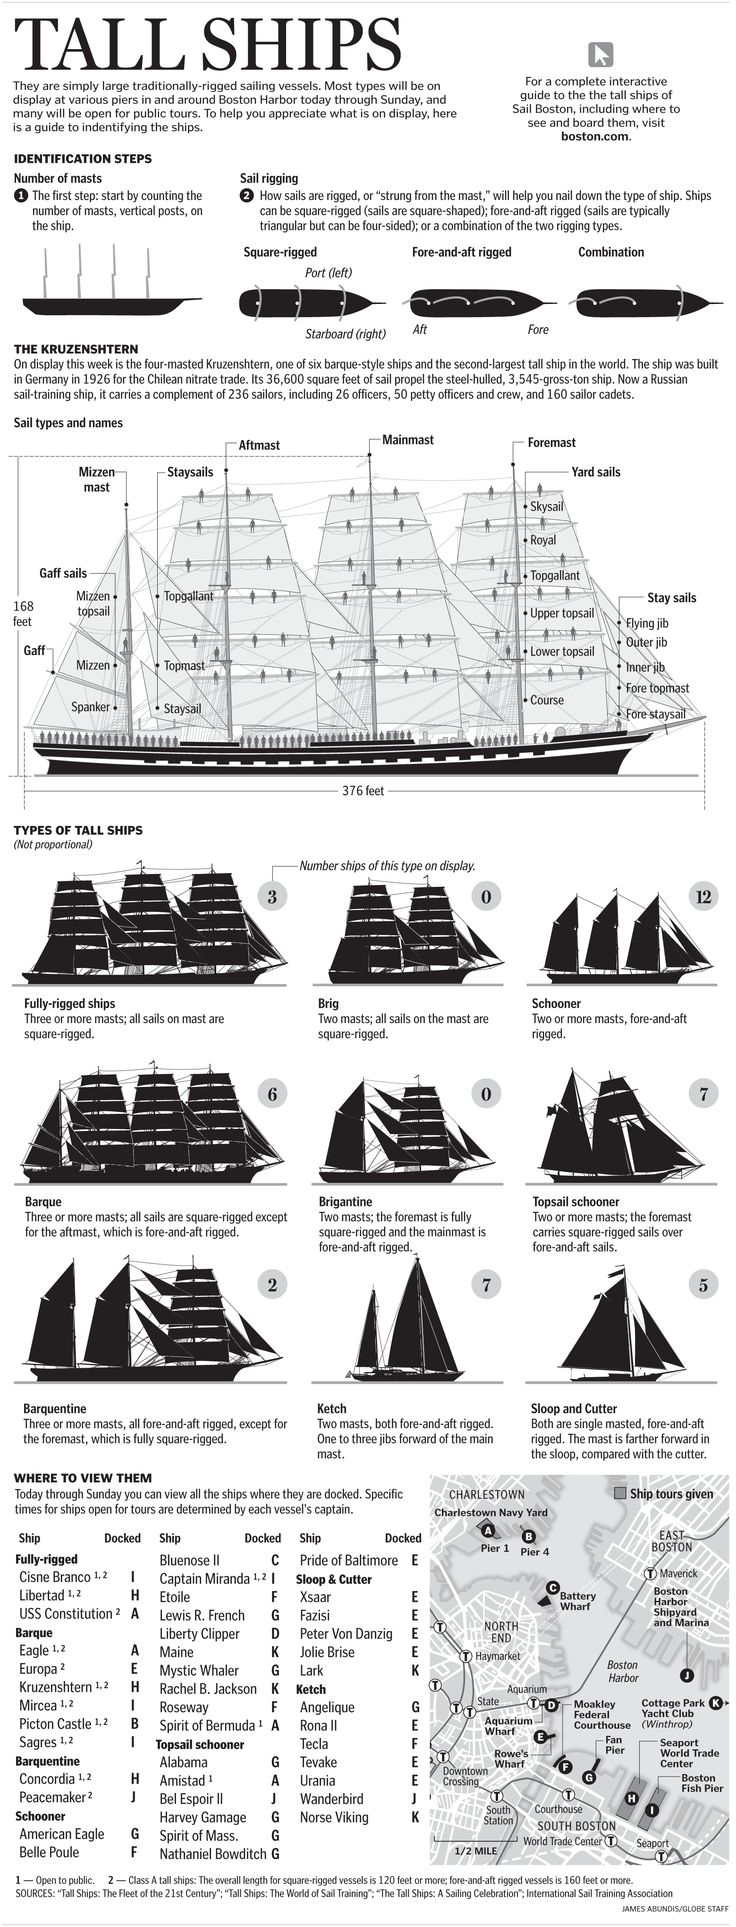 Tall Ships was basically a viewer's guide to help them identify the various classes and types of tall ships that would grace the Boston Harbor in the summer of 2010. The graphic had an informational and educational emphasis. This is one of my favorite pieces since I learned a lot by doing it plus tall ships are simply cool to look at.